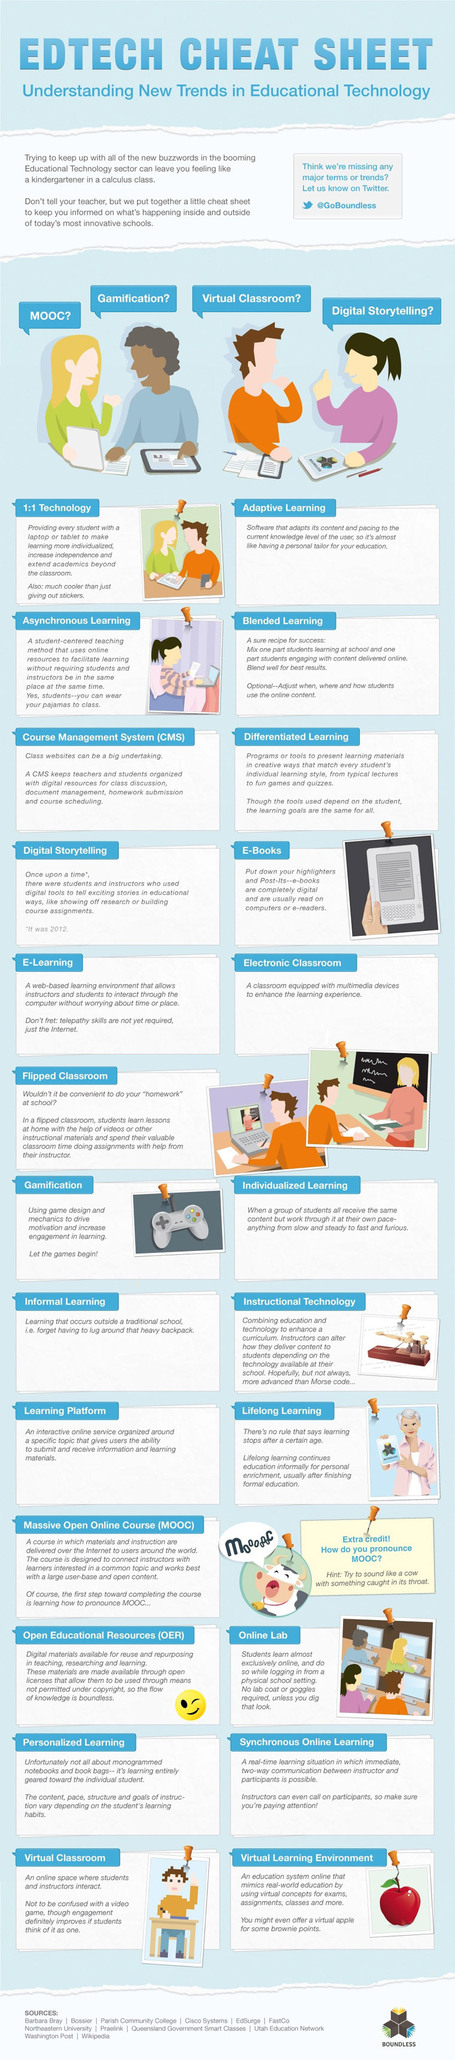 24 Ed-Tech Terms You Should Know [Infographic] | MyEdu&PLN | Scoop.it